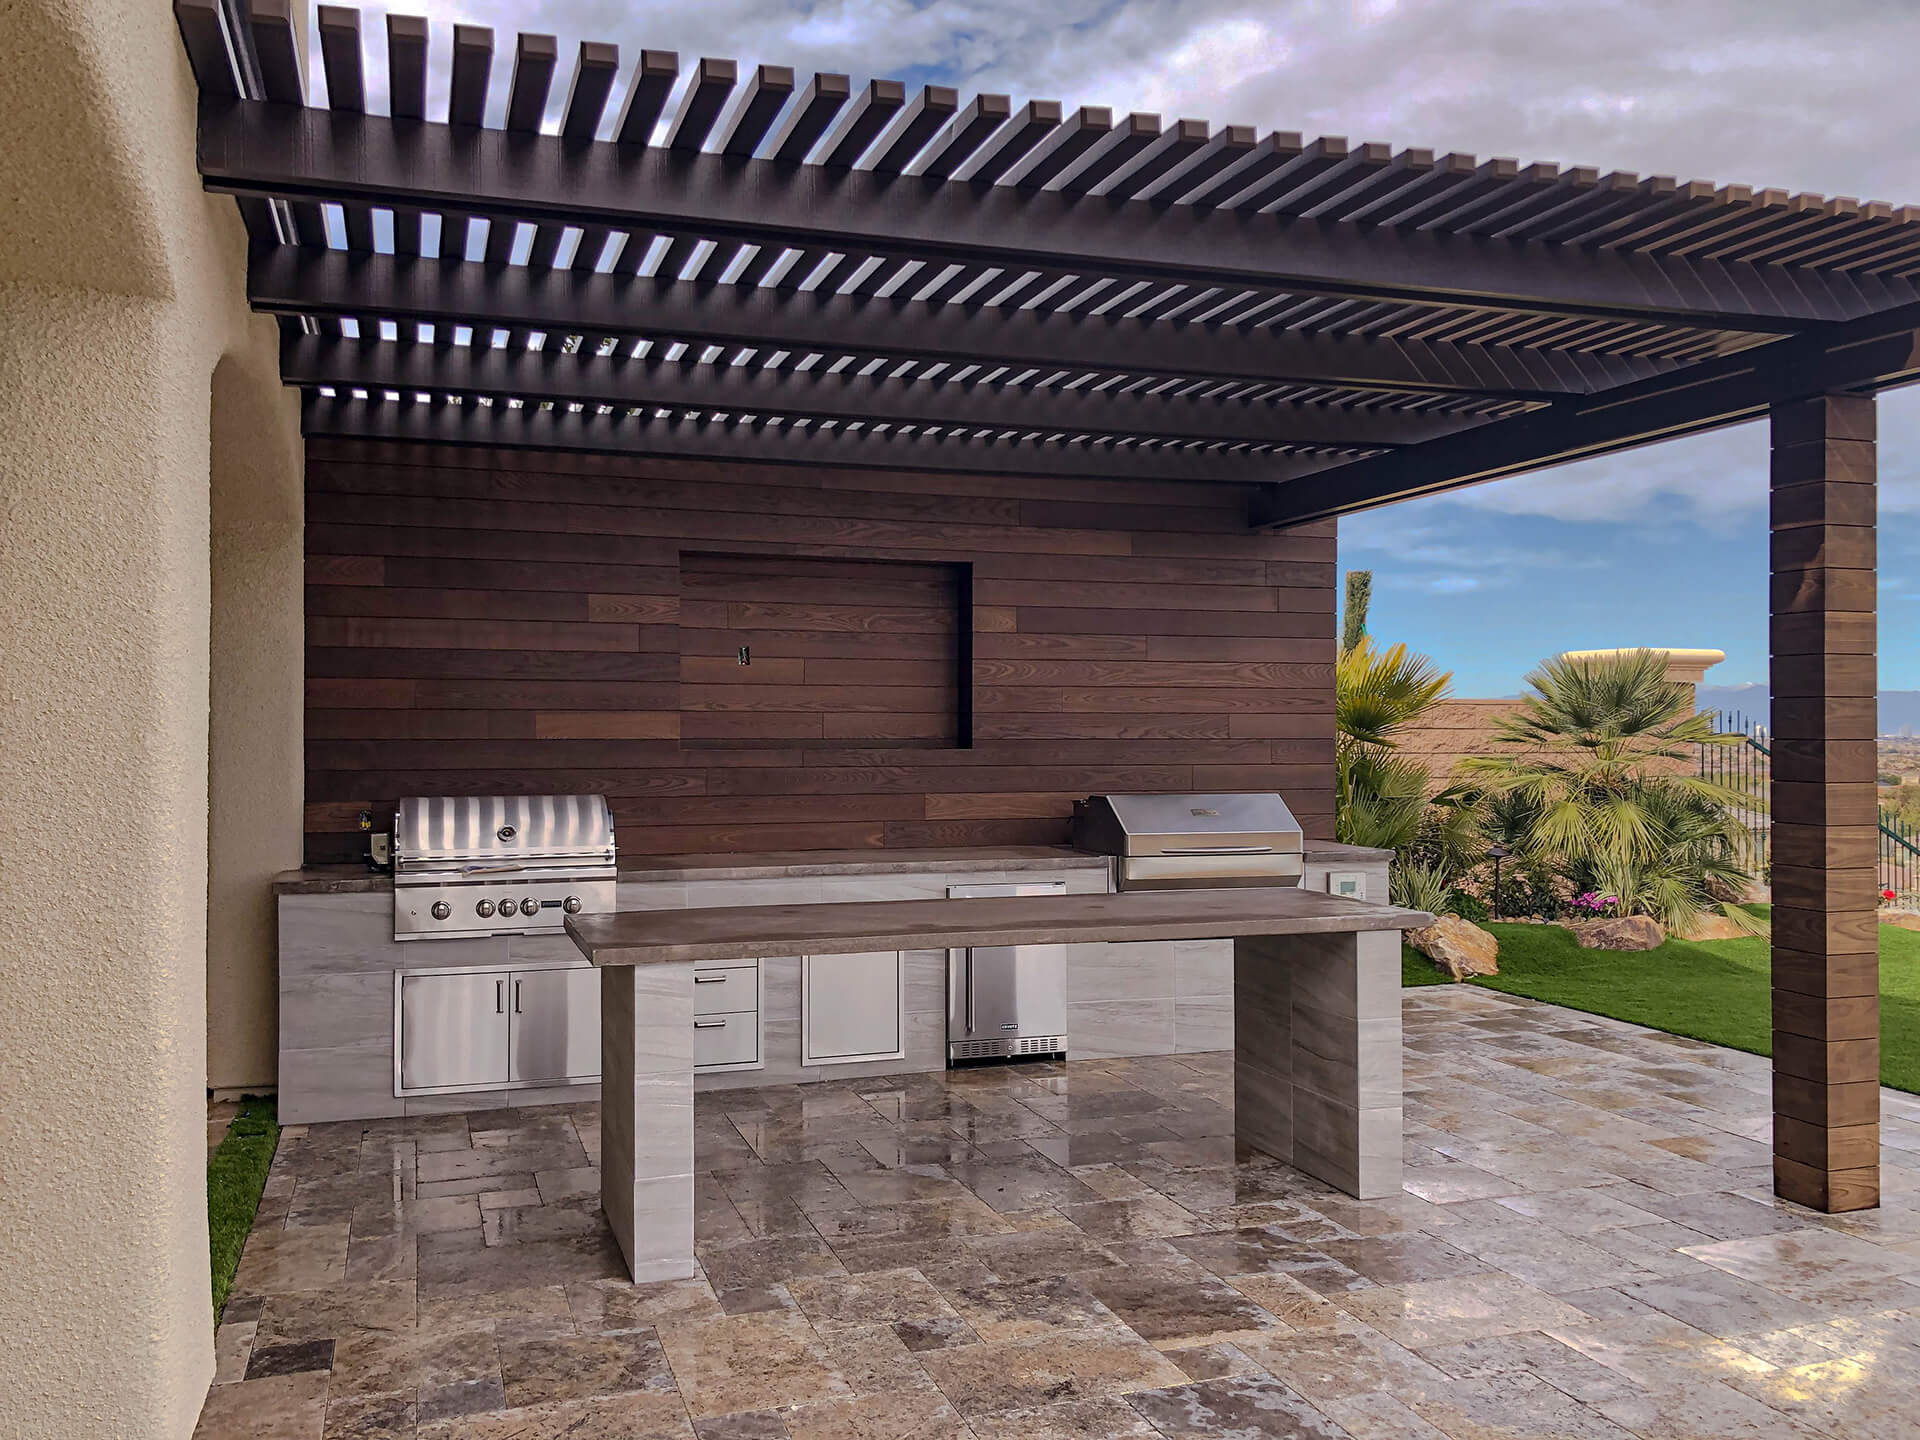 Custom Outdoor Kitchen with Wood Slat Patio Cover Design